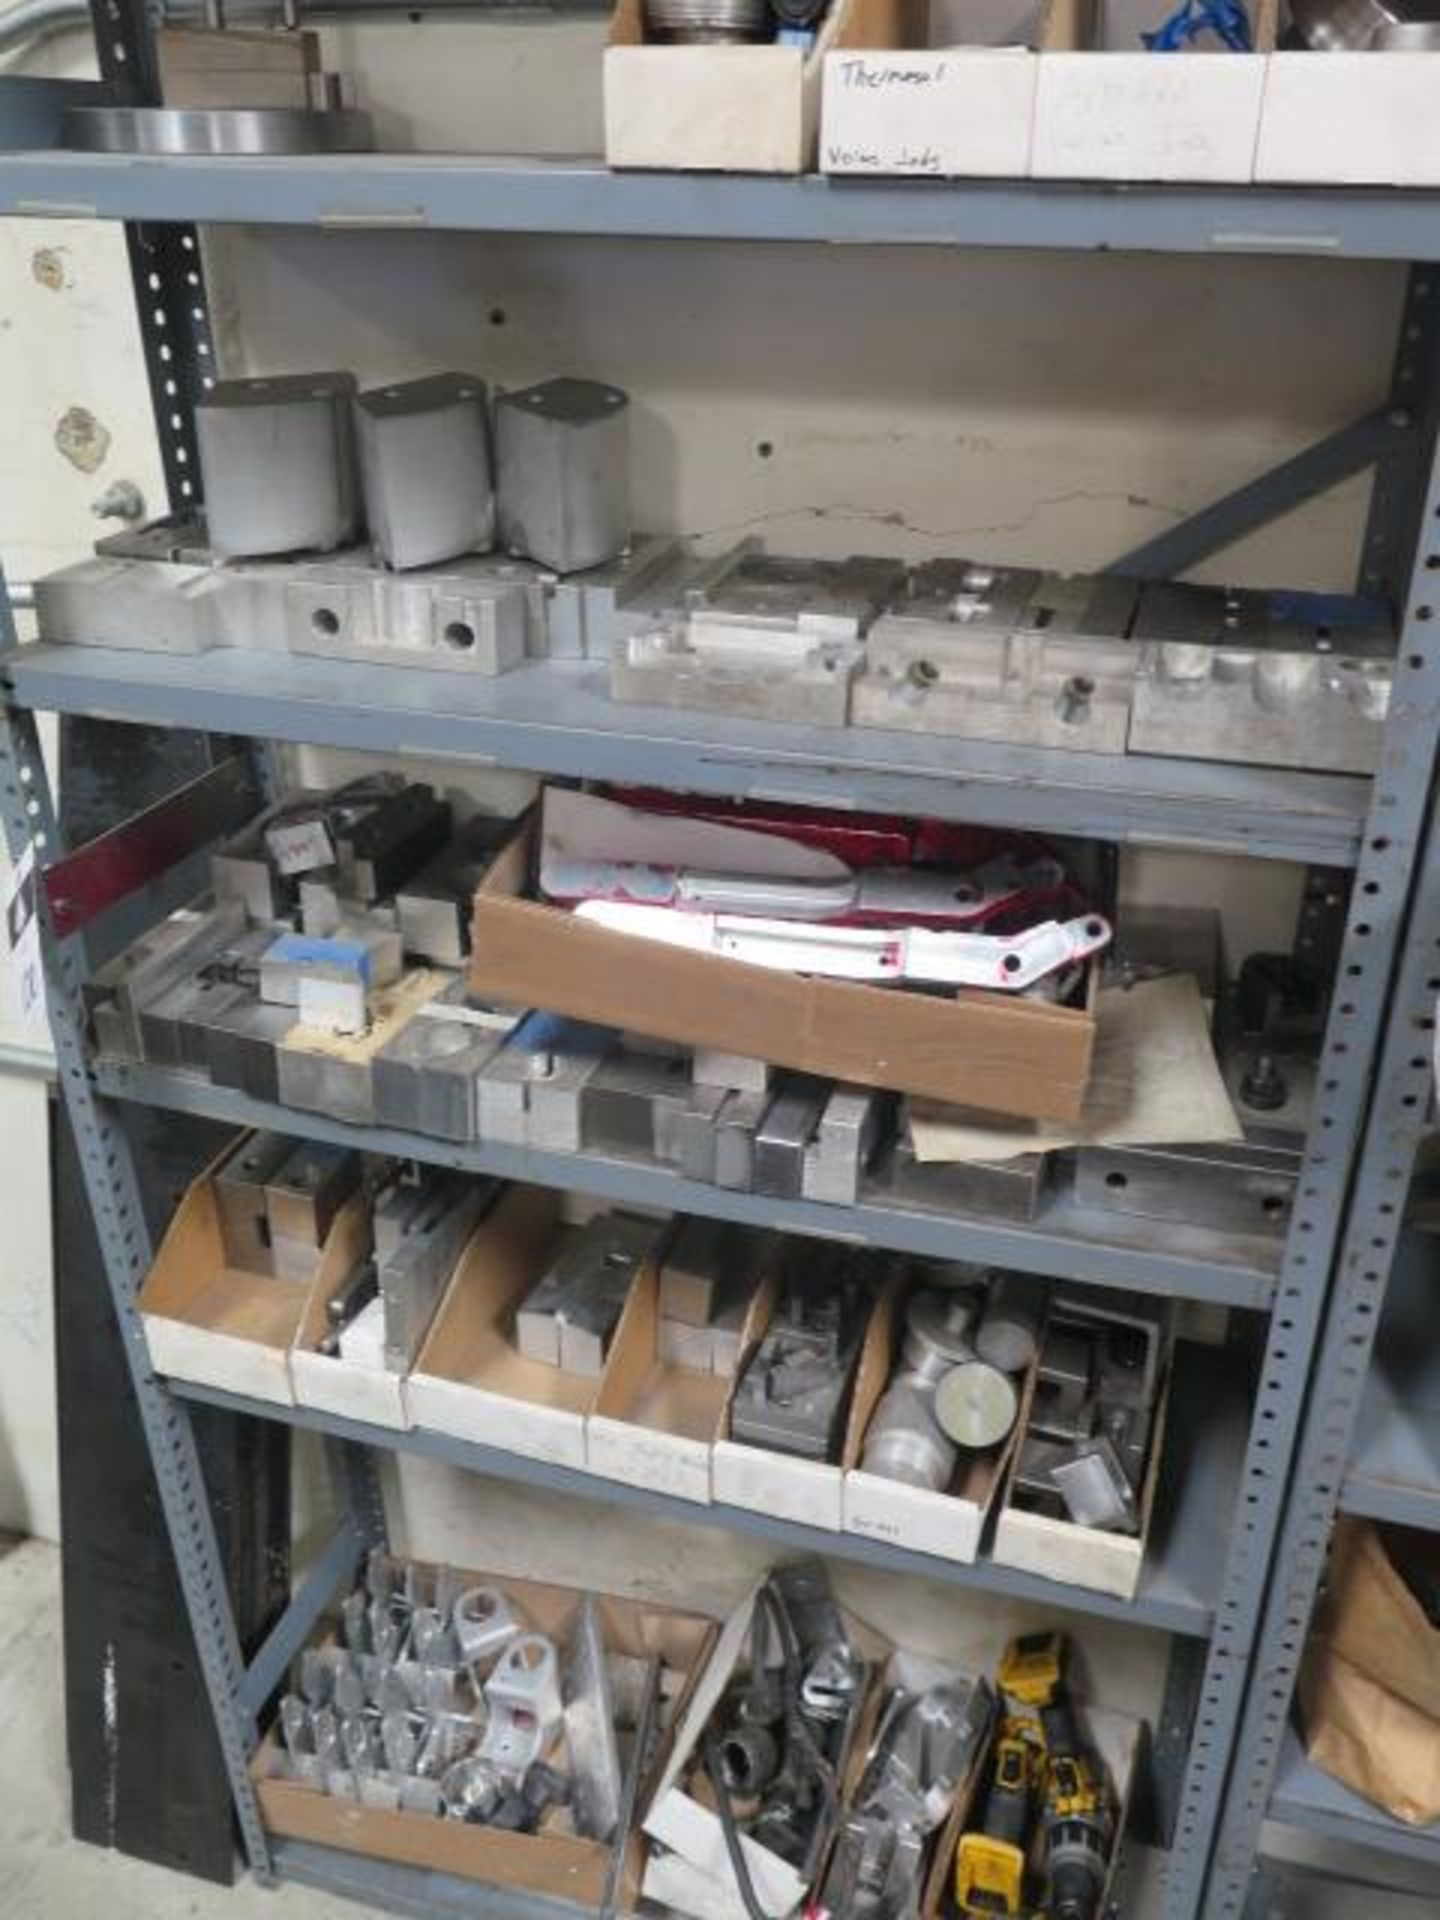 Vise Jaws, Fixtures and Misc w/ (7) Shelves (SOLD AS-IS - NO WARRANTY) - Image 3 of 6